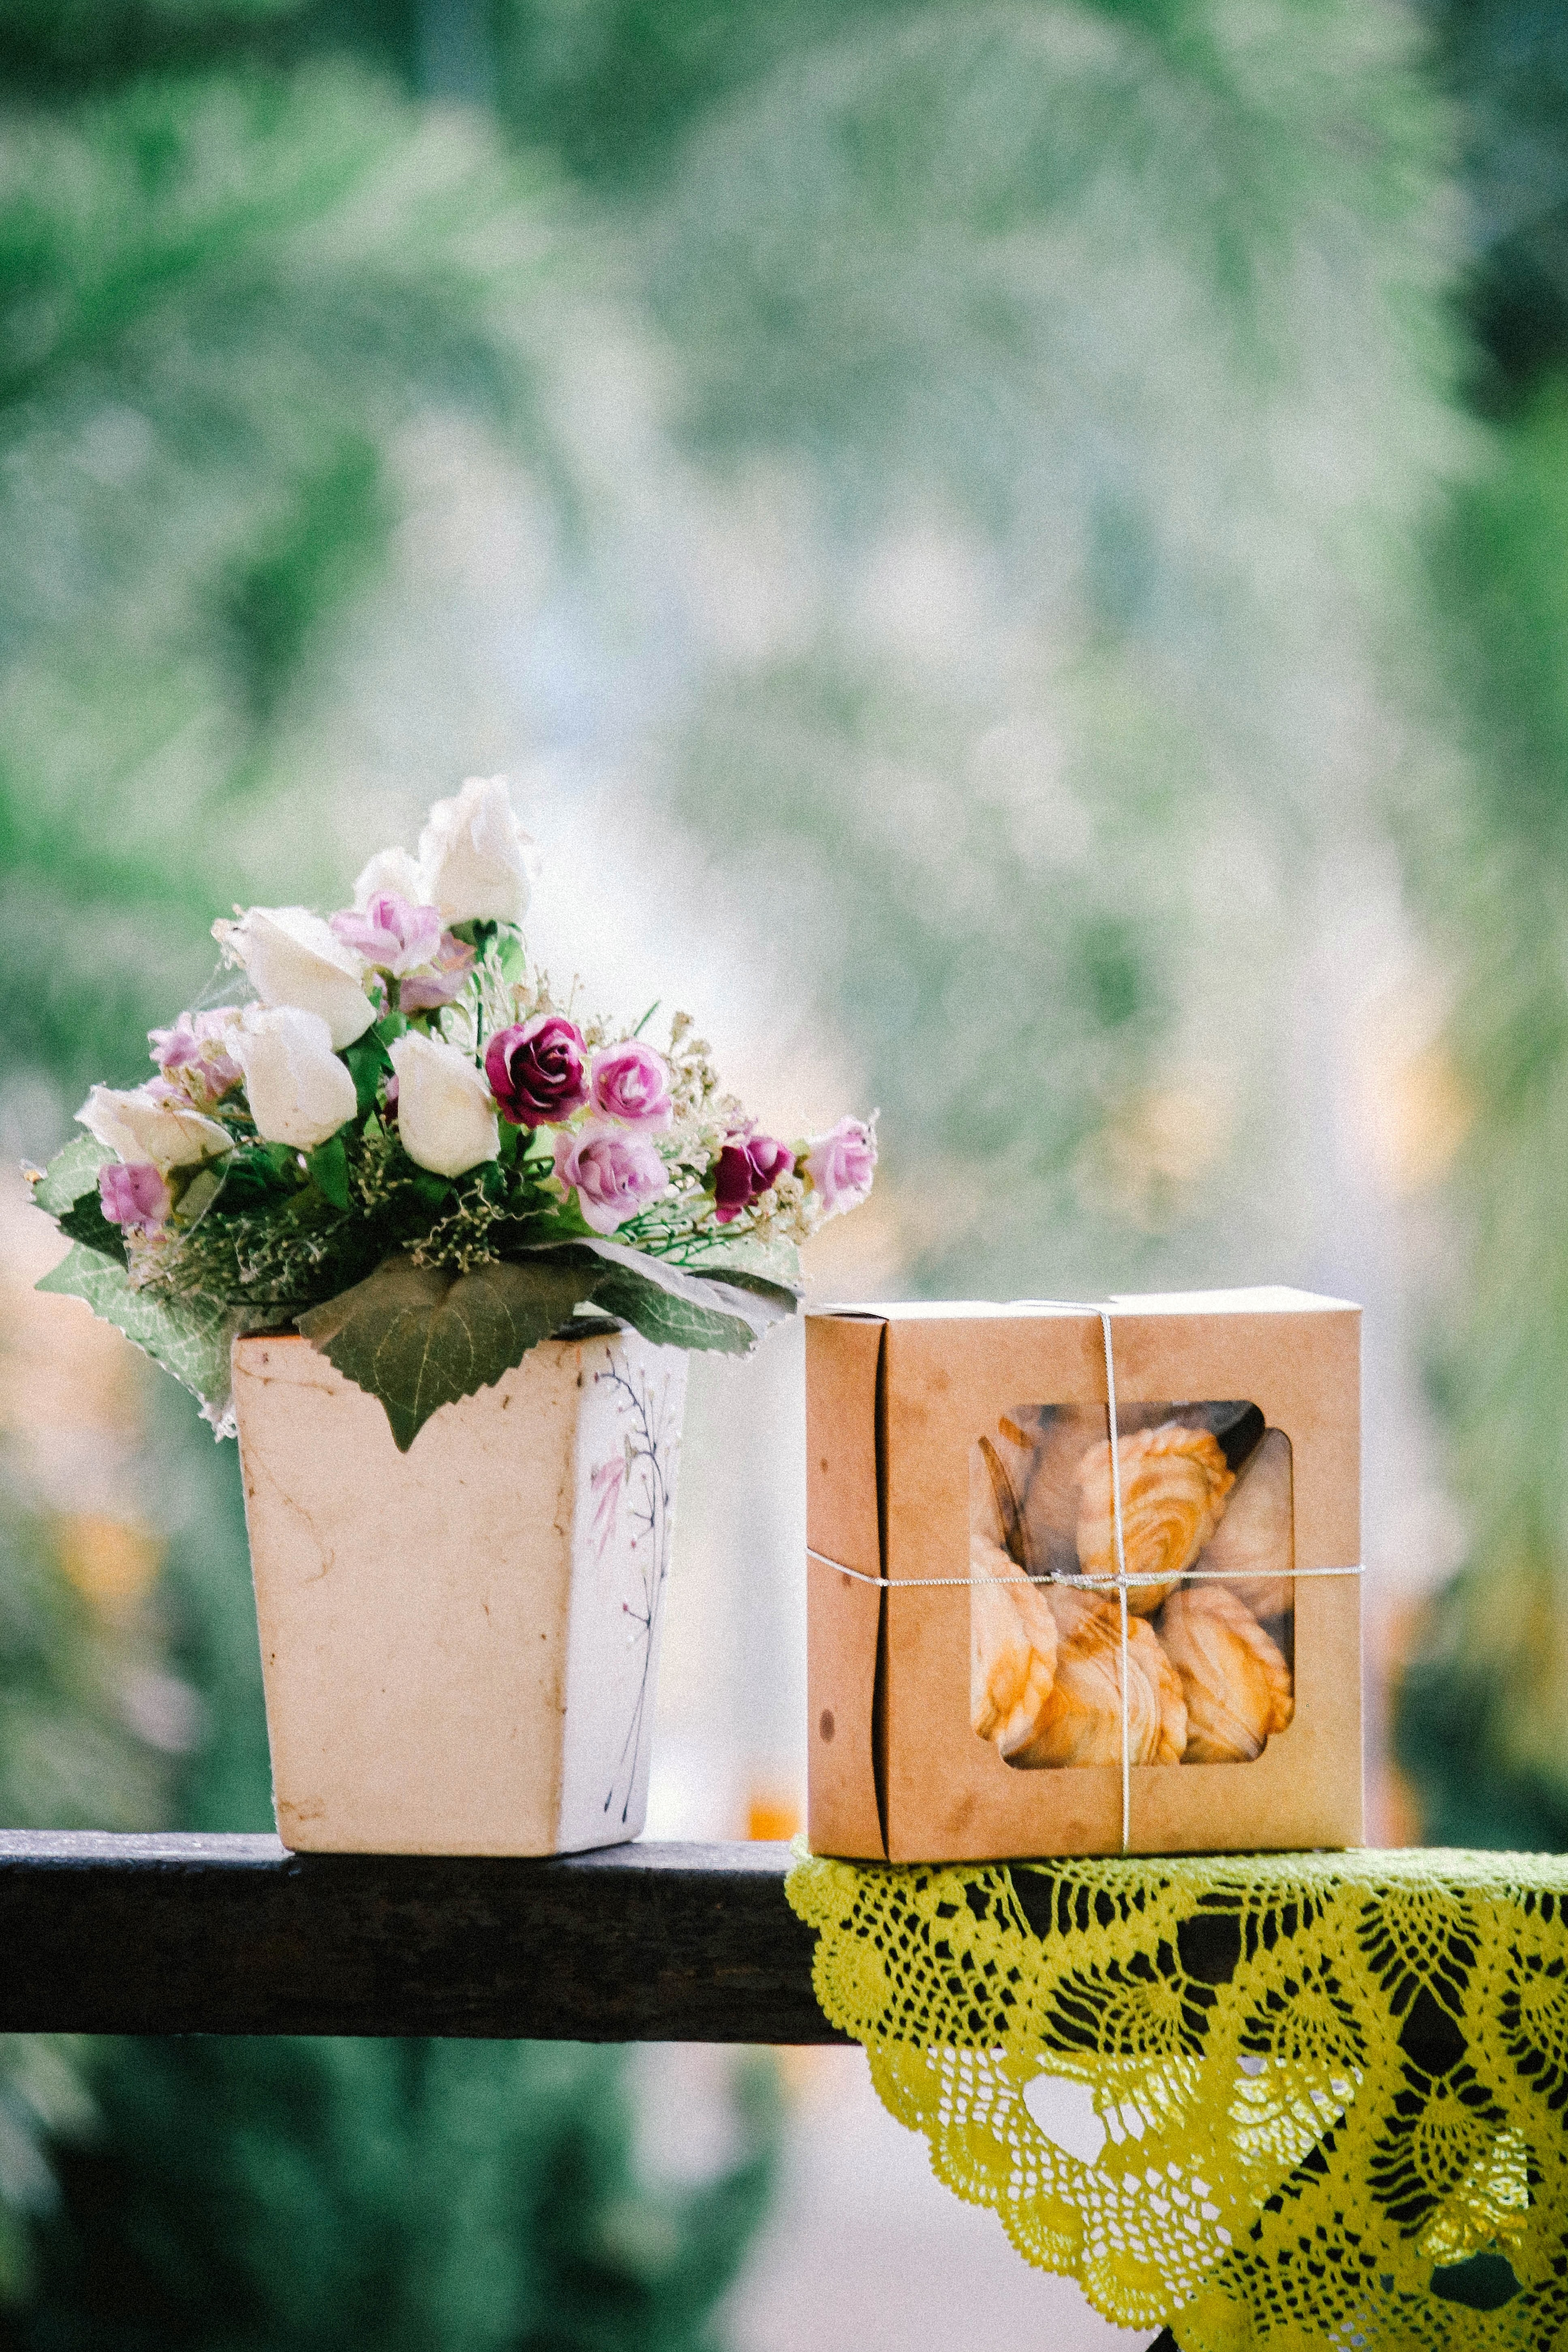 white rose bouquet in ceramic vase on wooden fence